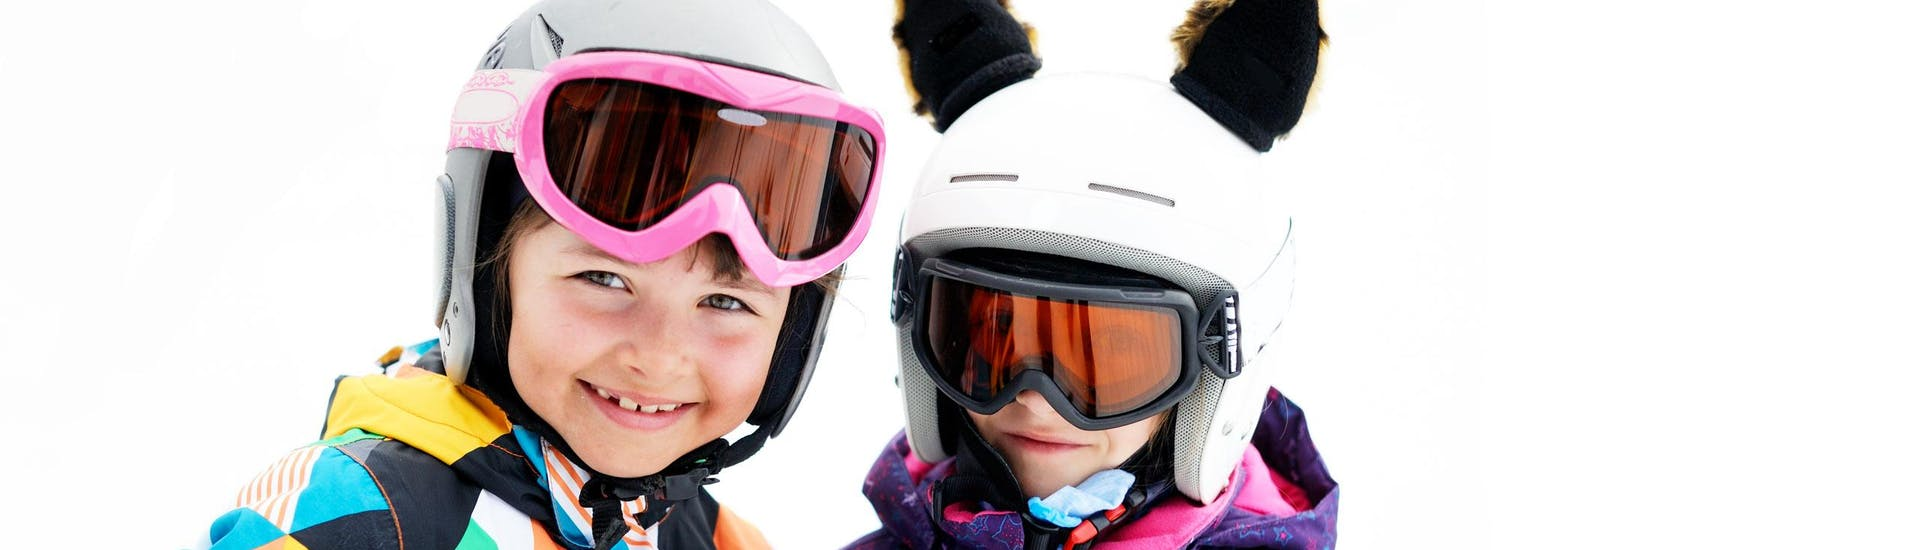 Two young children smiling at the camera during one of the Kids Ski Lessons (6-13 y.) for Advanced Skiers organised by Skischule Waidring Steinplatte.